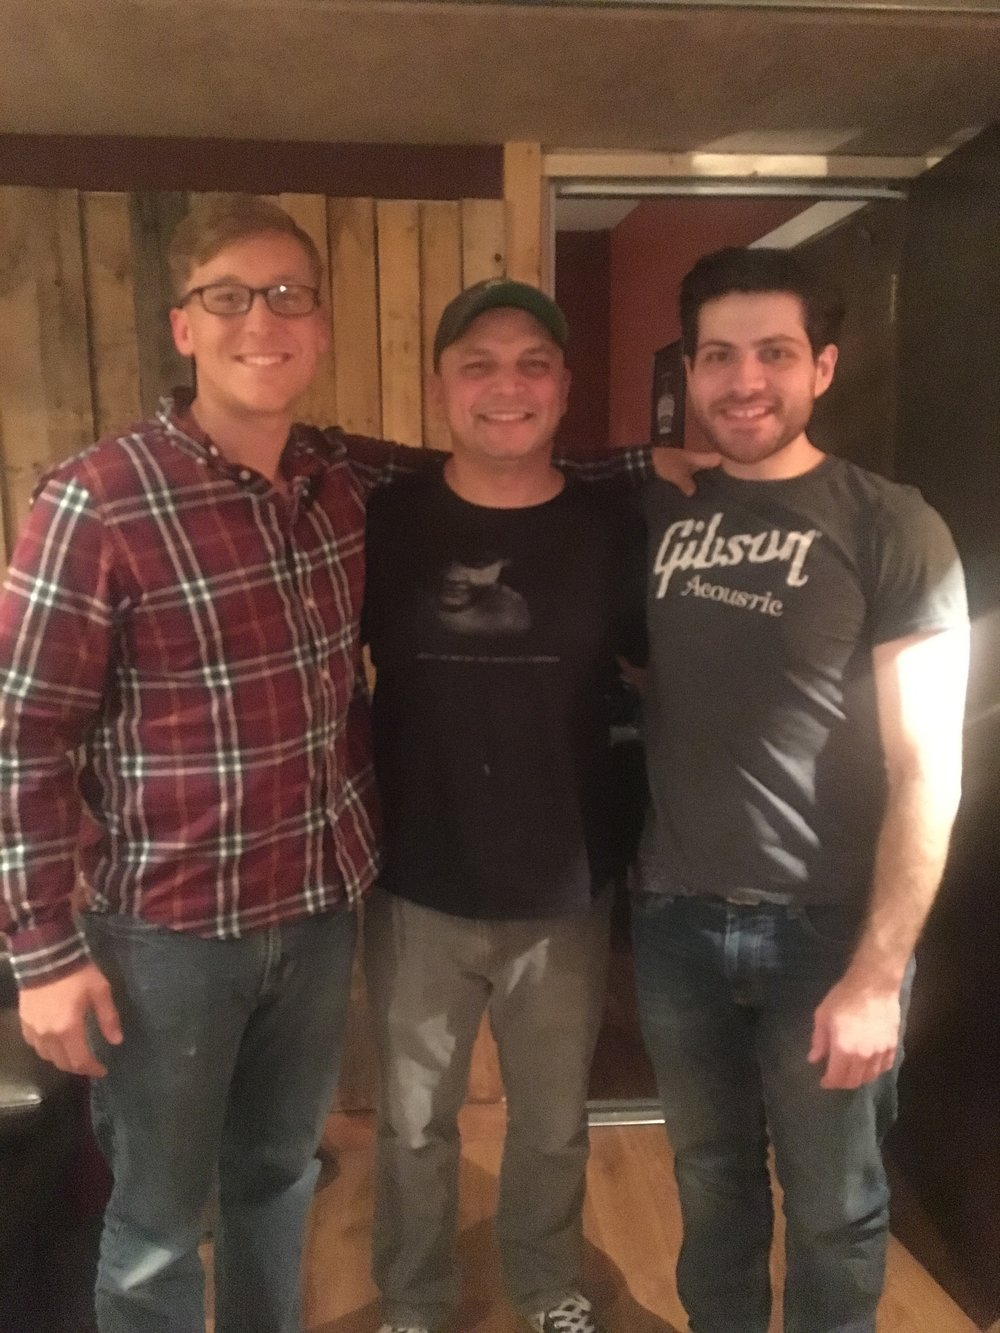 SGT Damian Knight, Producer Jerry Ramos and HSFV Ambassador/Guitar Player Cory Singer